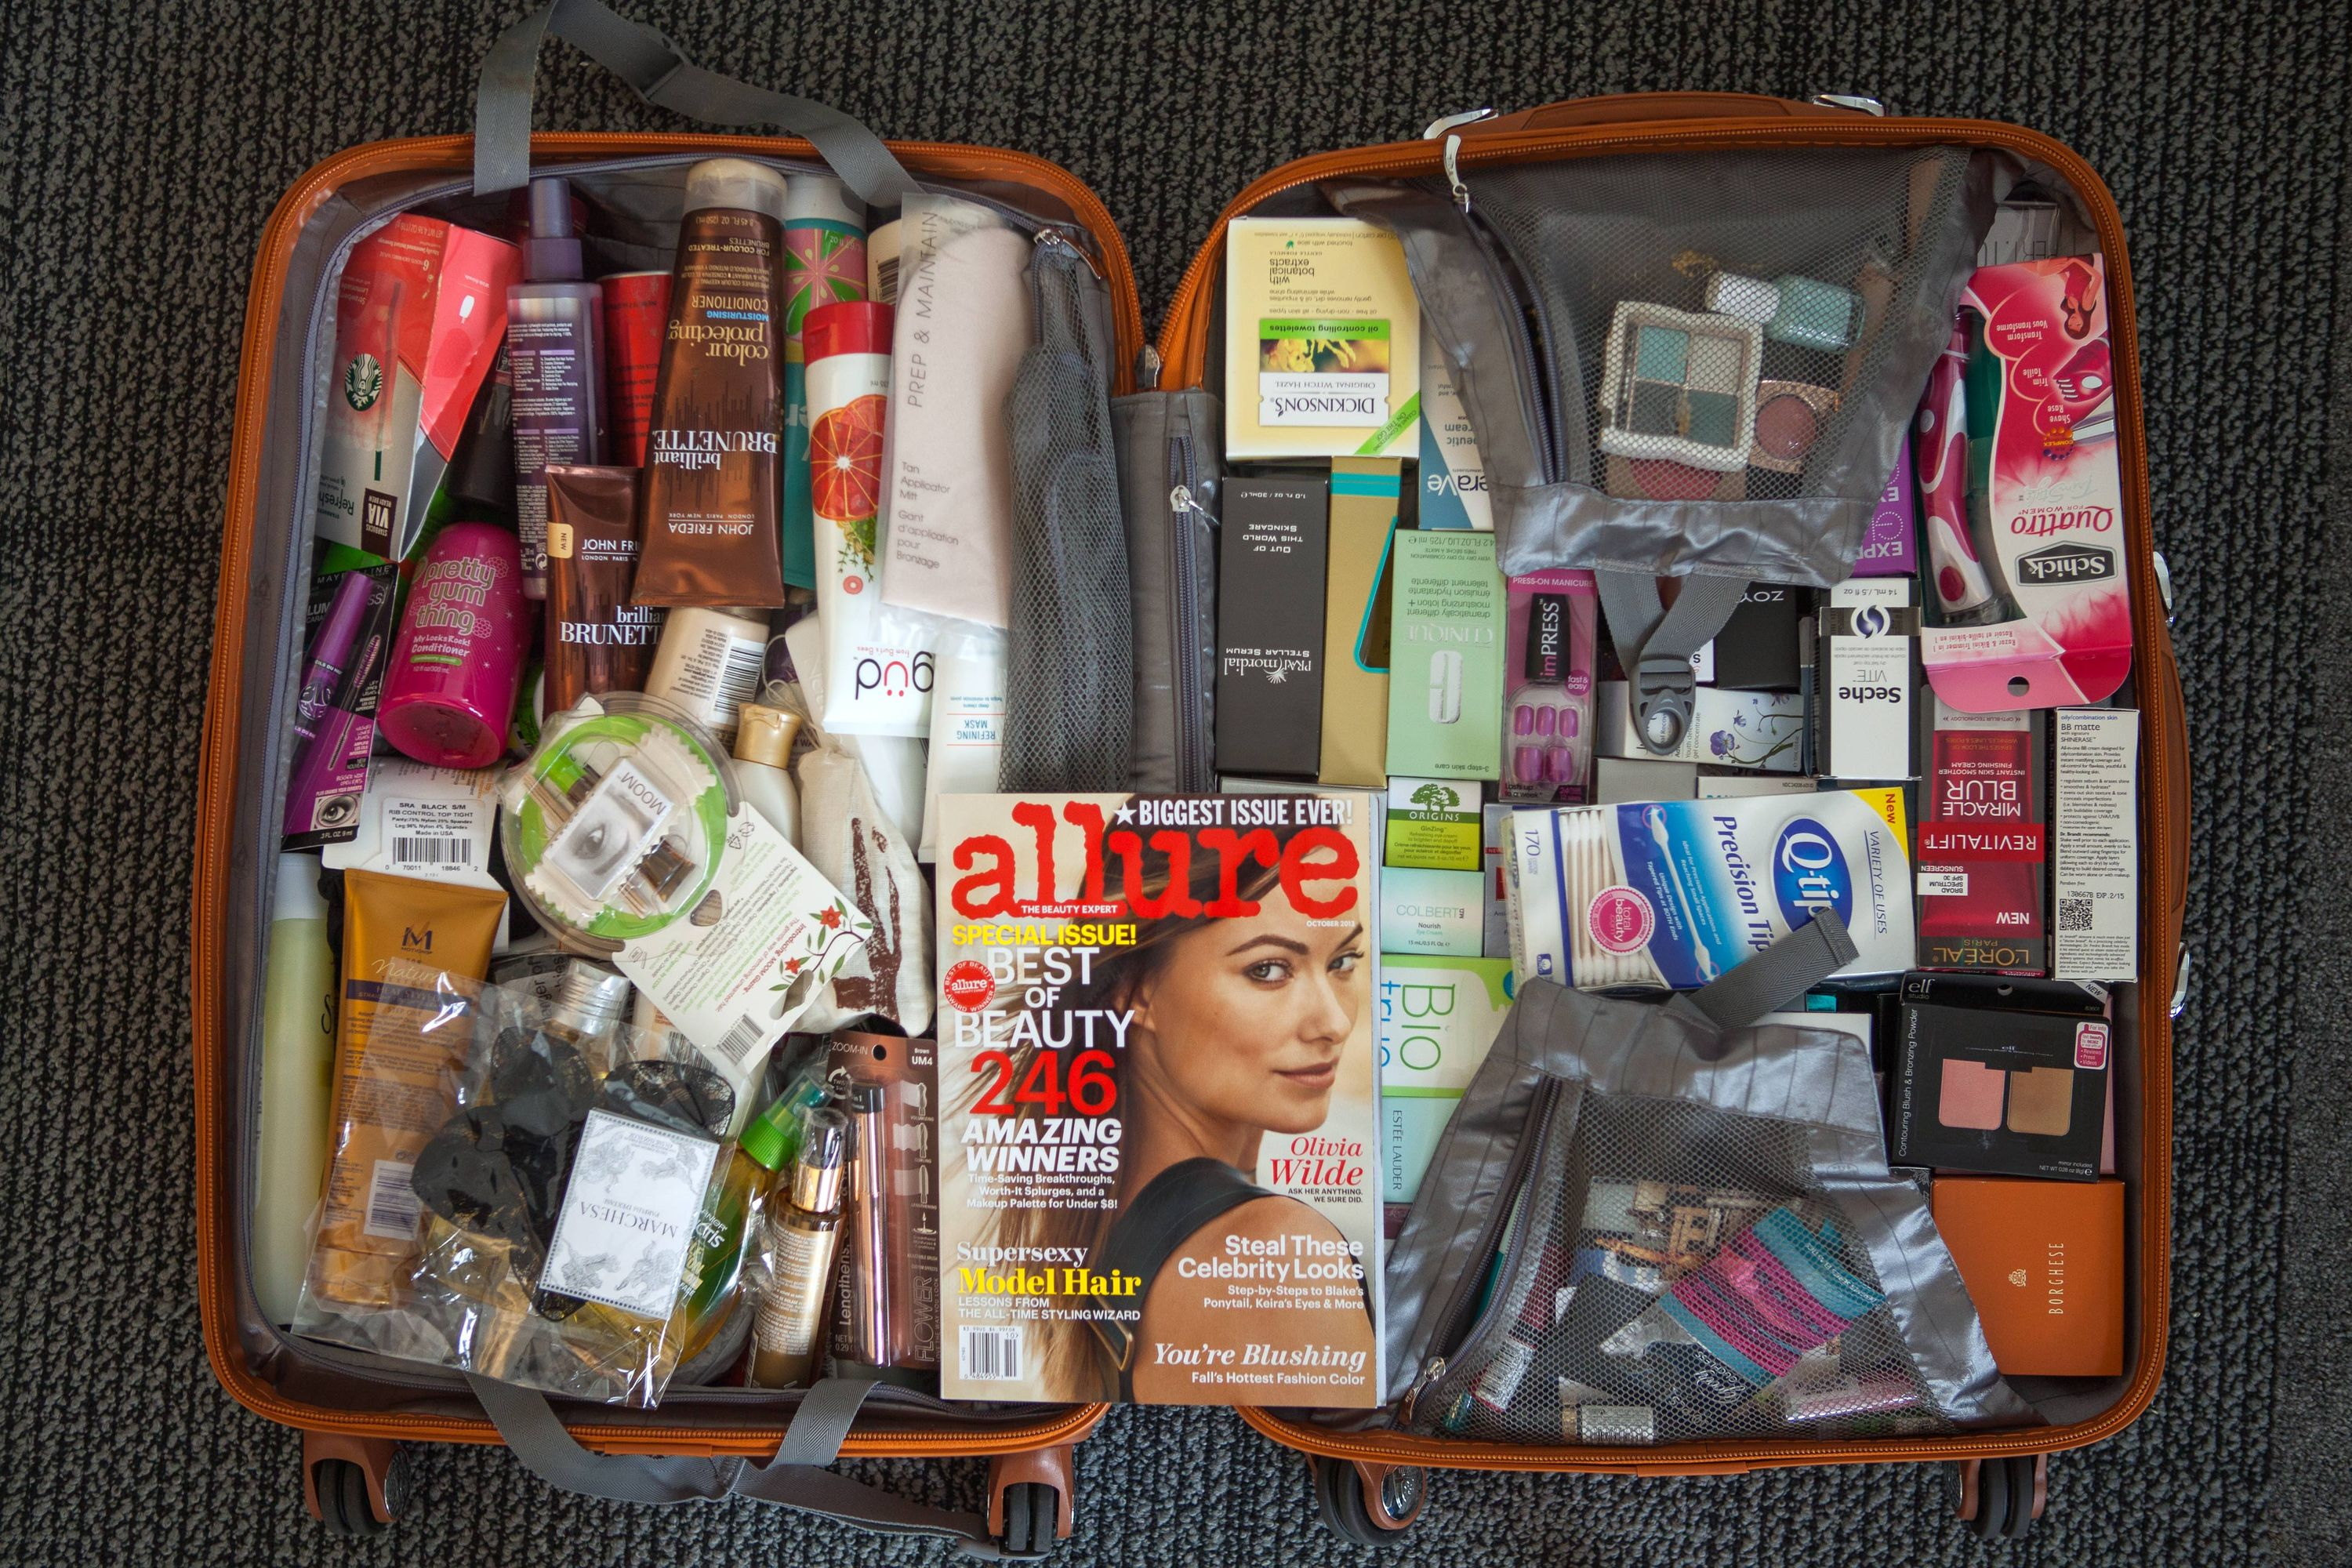 Allure cosmetics makeup beauty swag bag goody bag